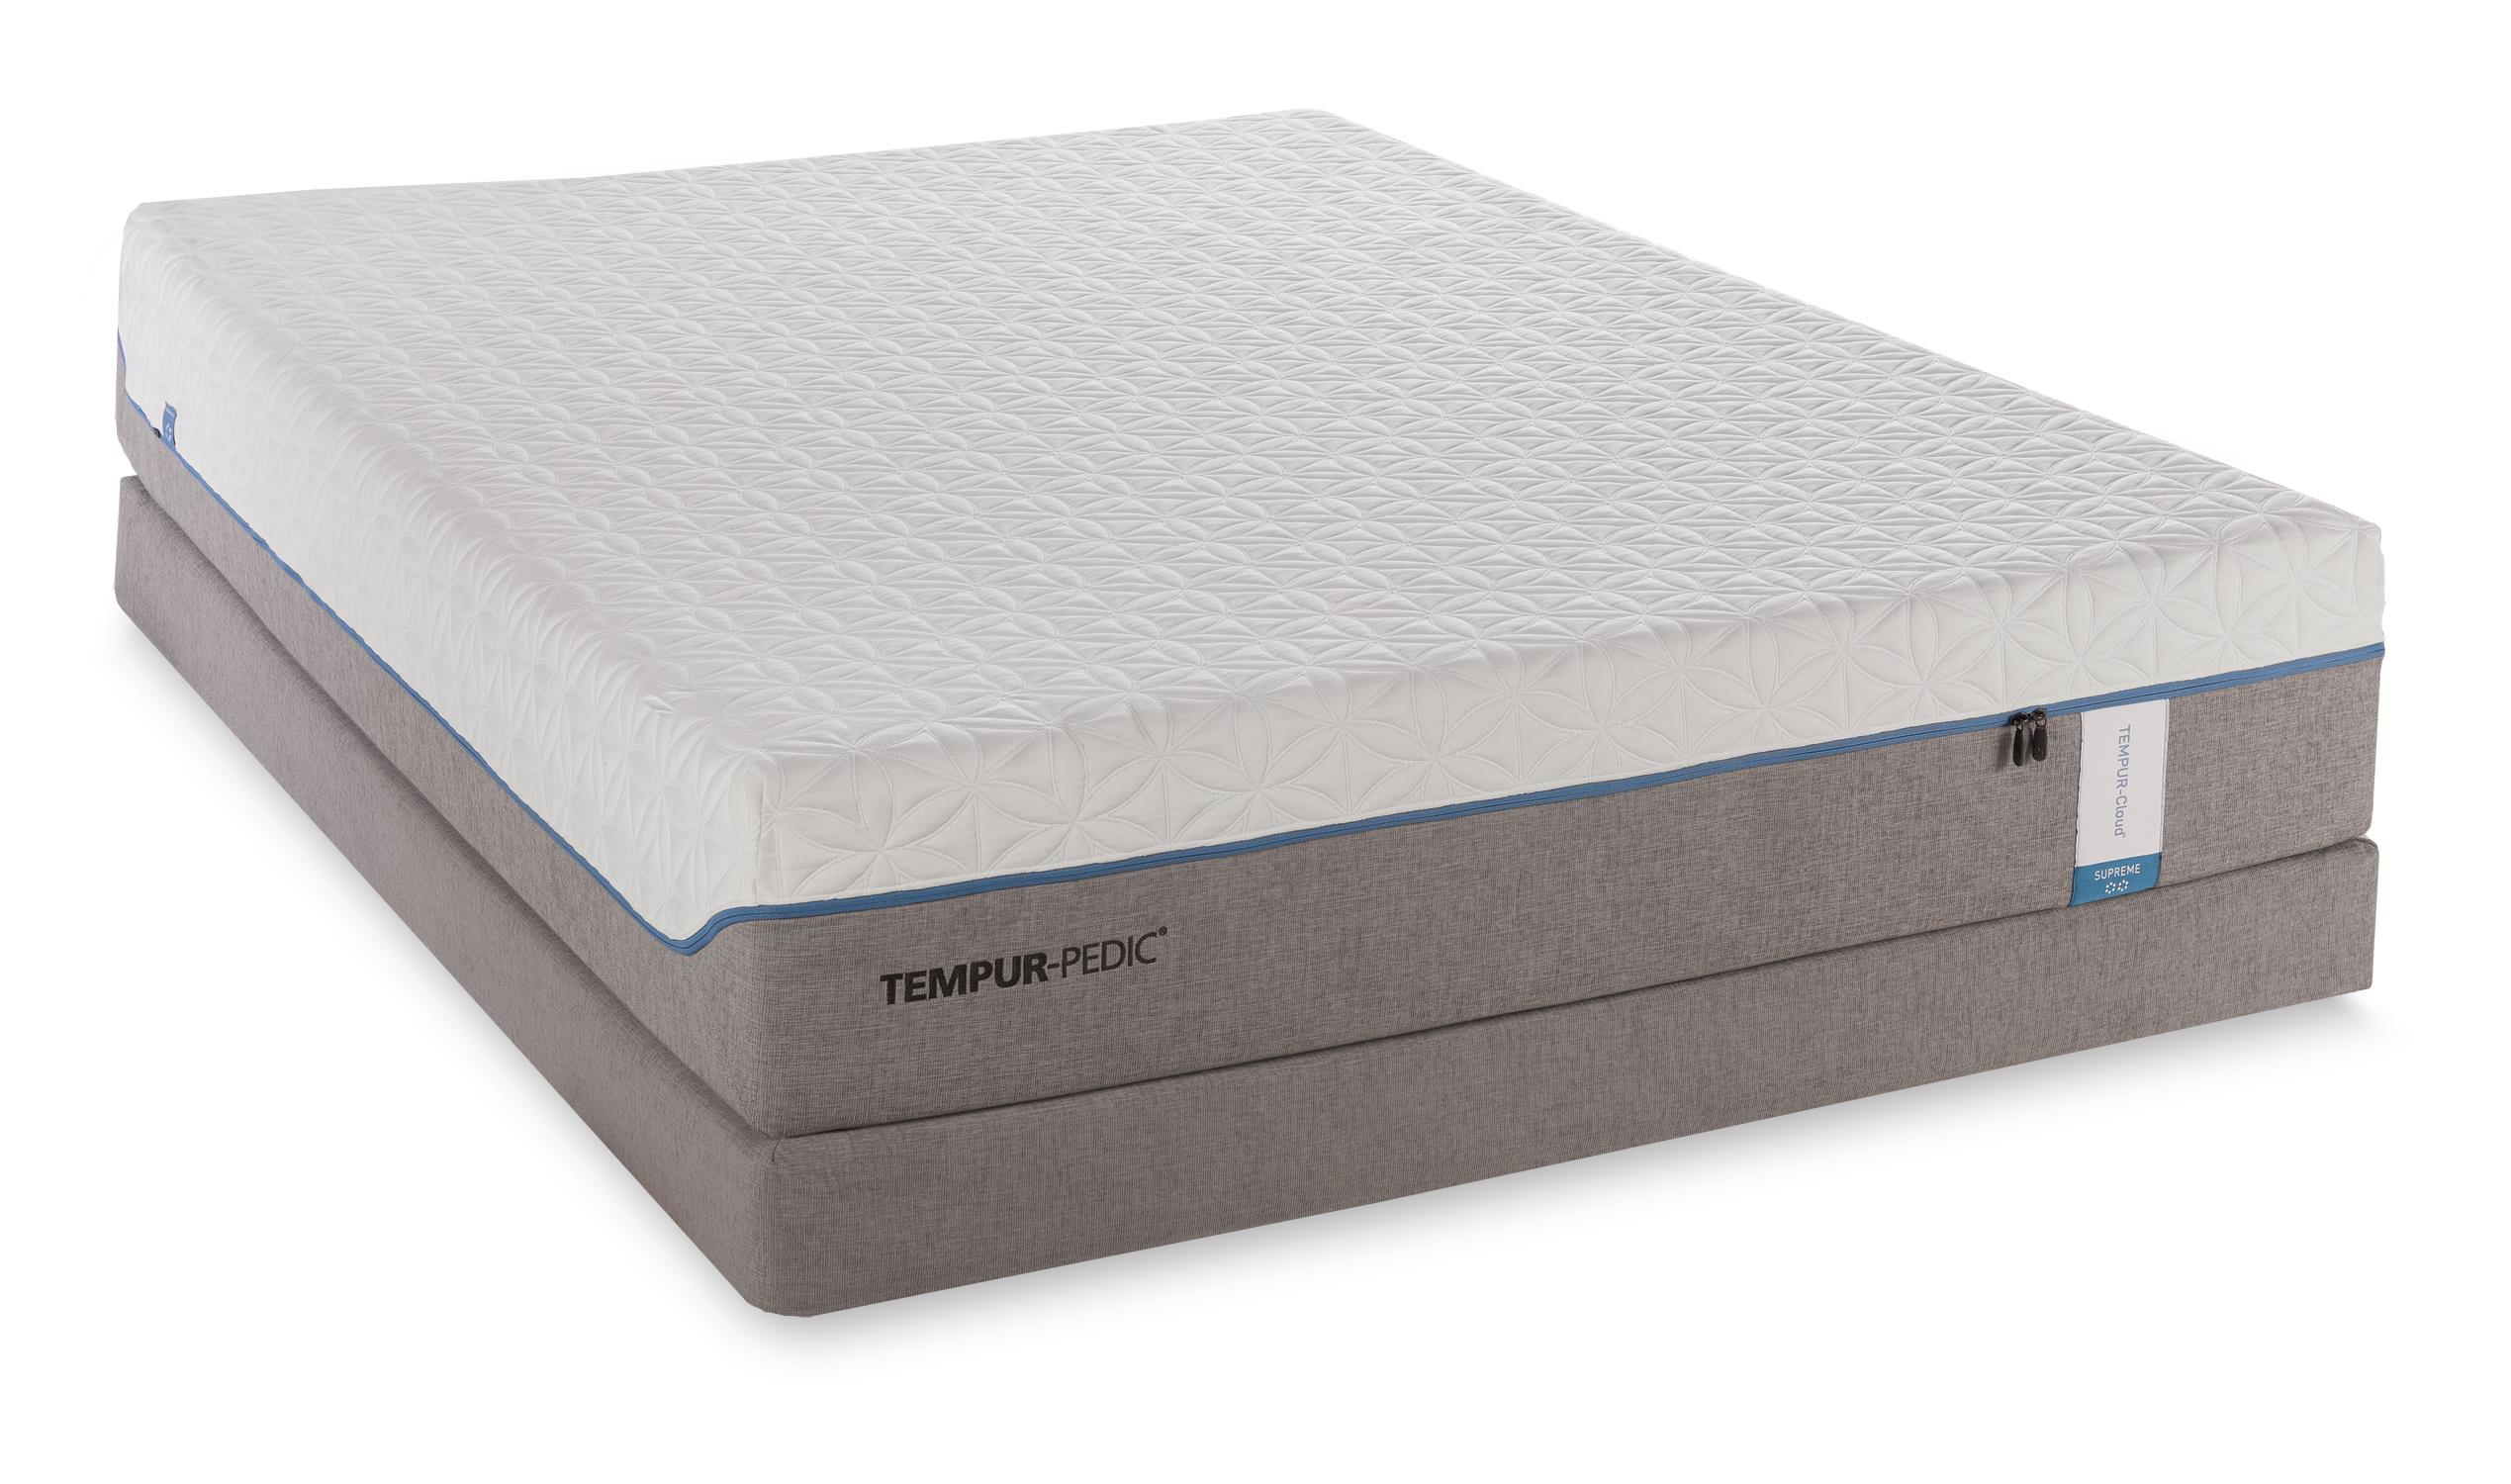 Tempur-Pedic® TEMPUR-Cloud Supreme King Soft Mattress Set - Item Number: 10240270+2x21510120